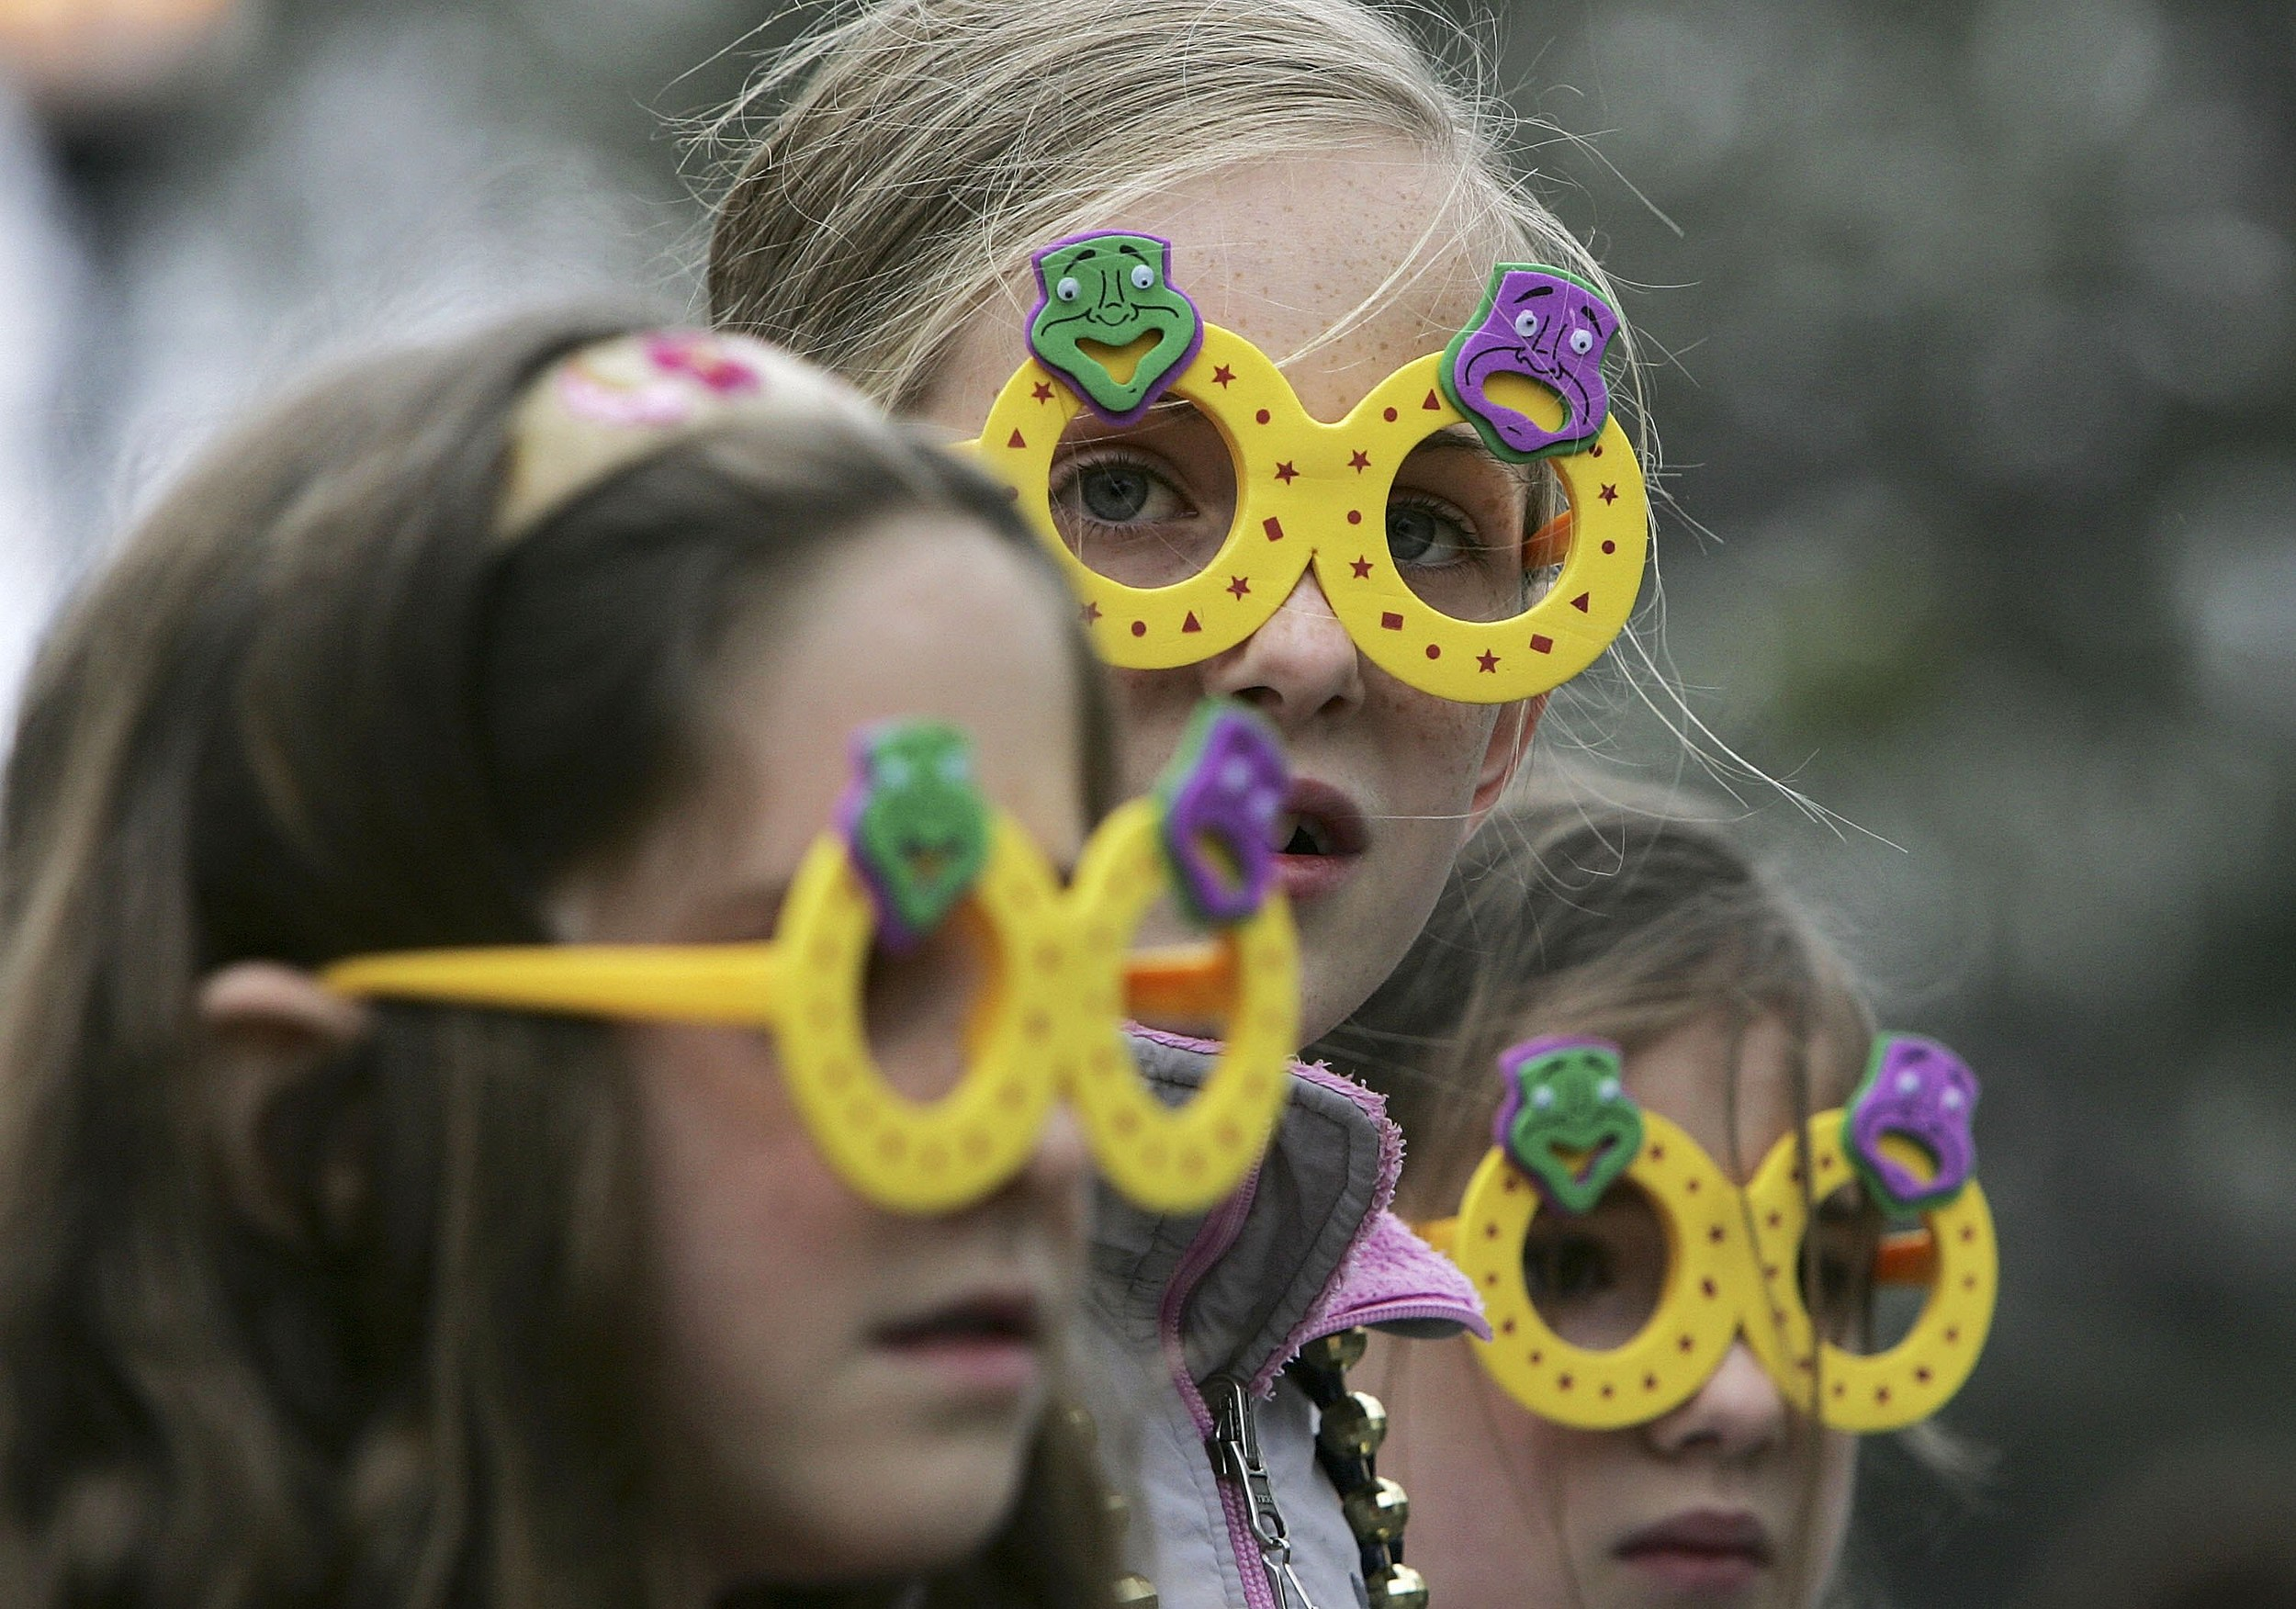 Kids at Mardi Gras (Getty Images)